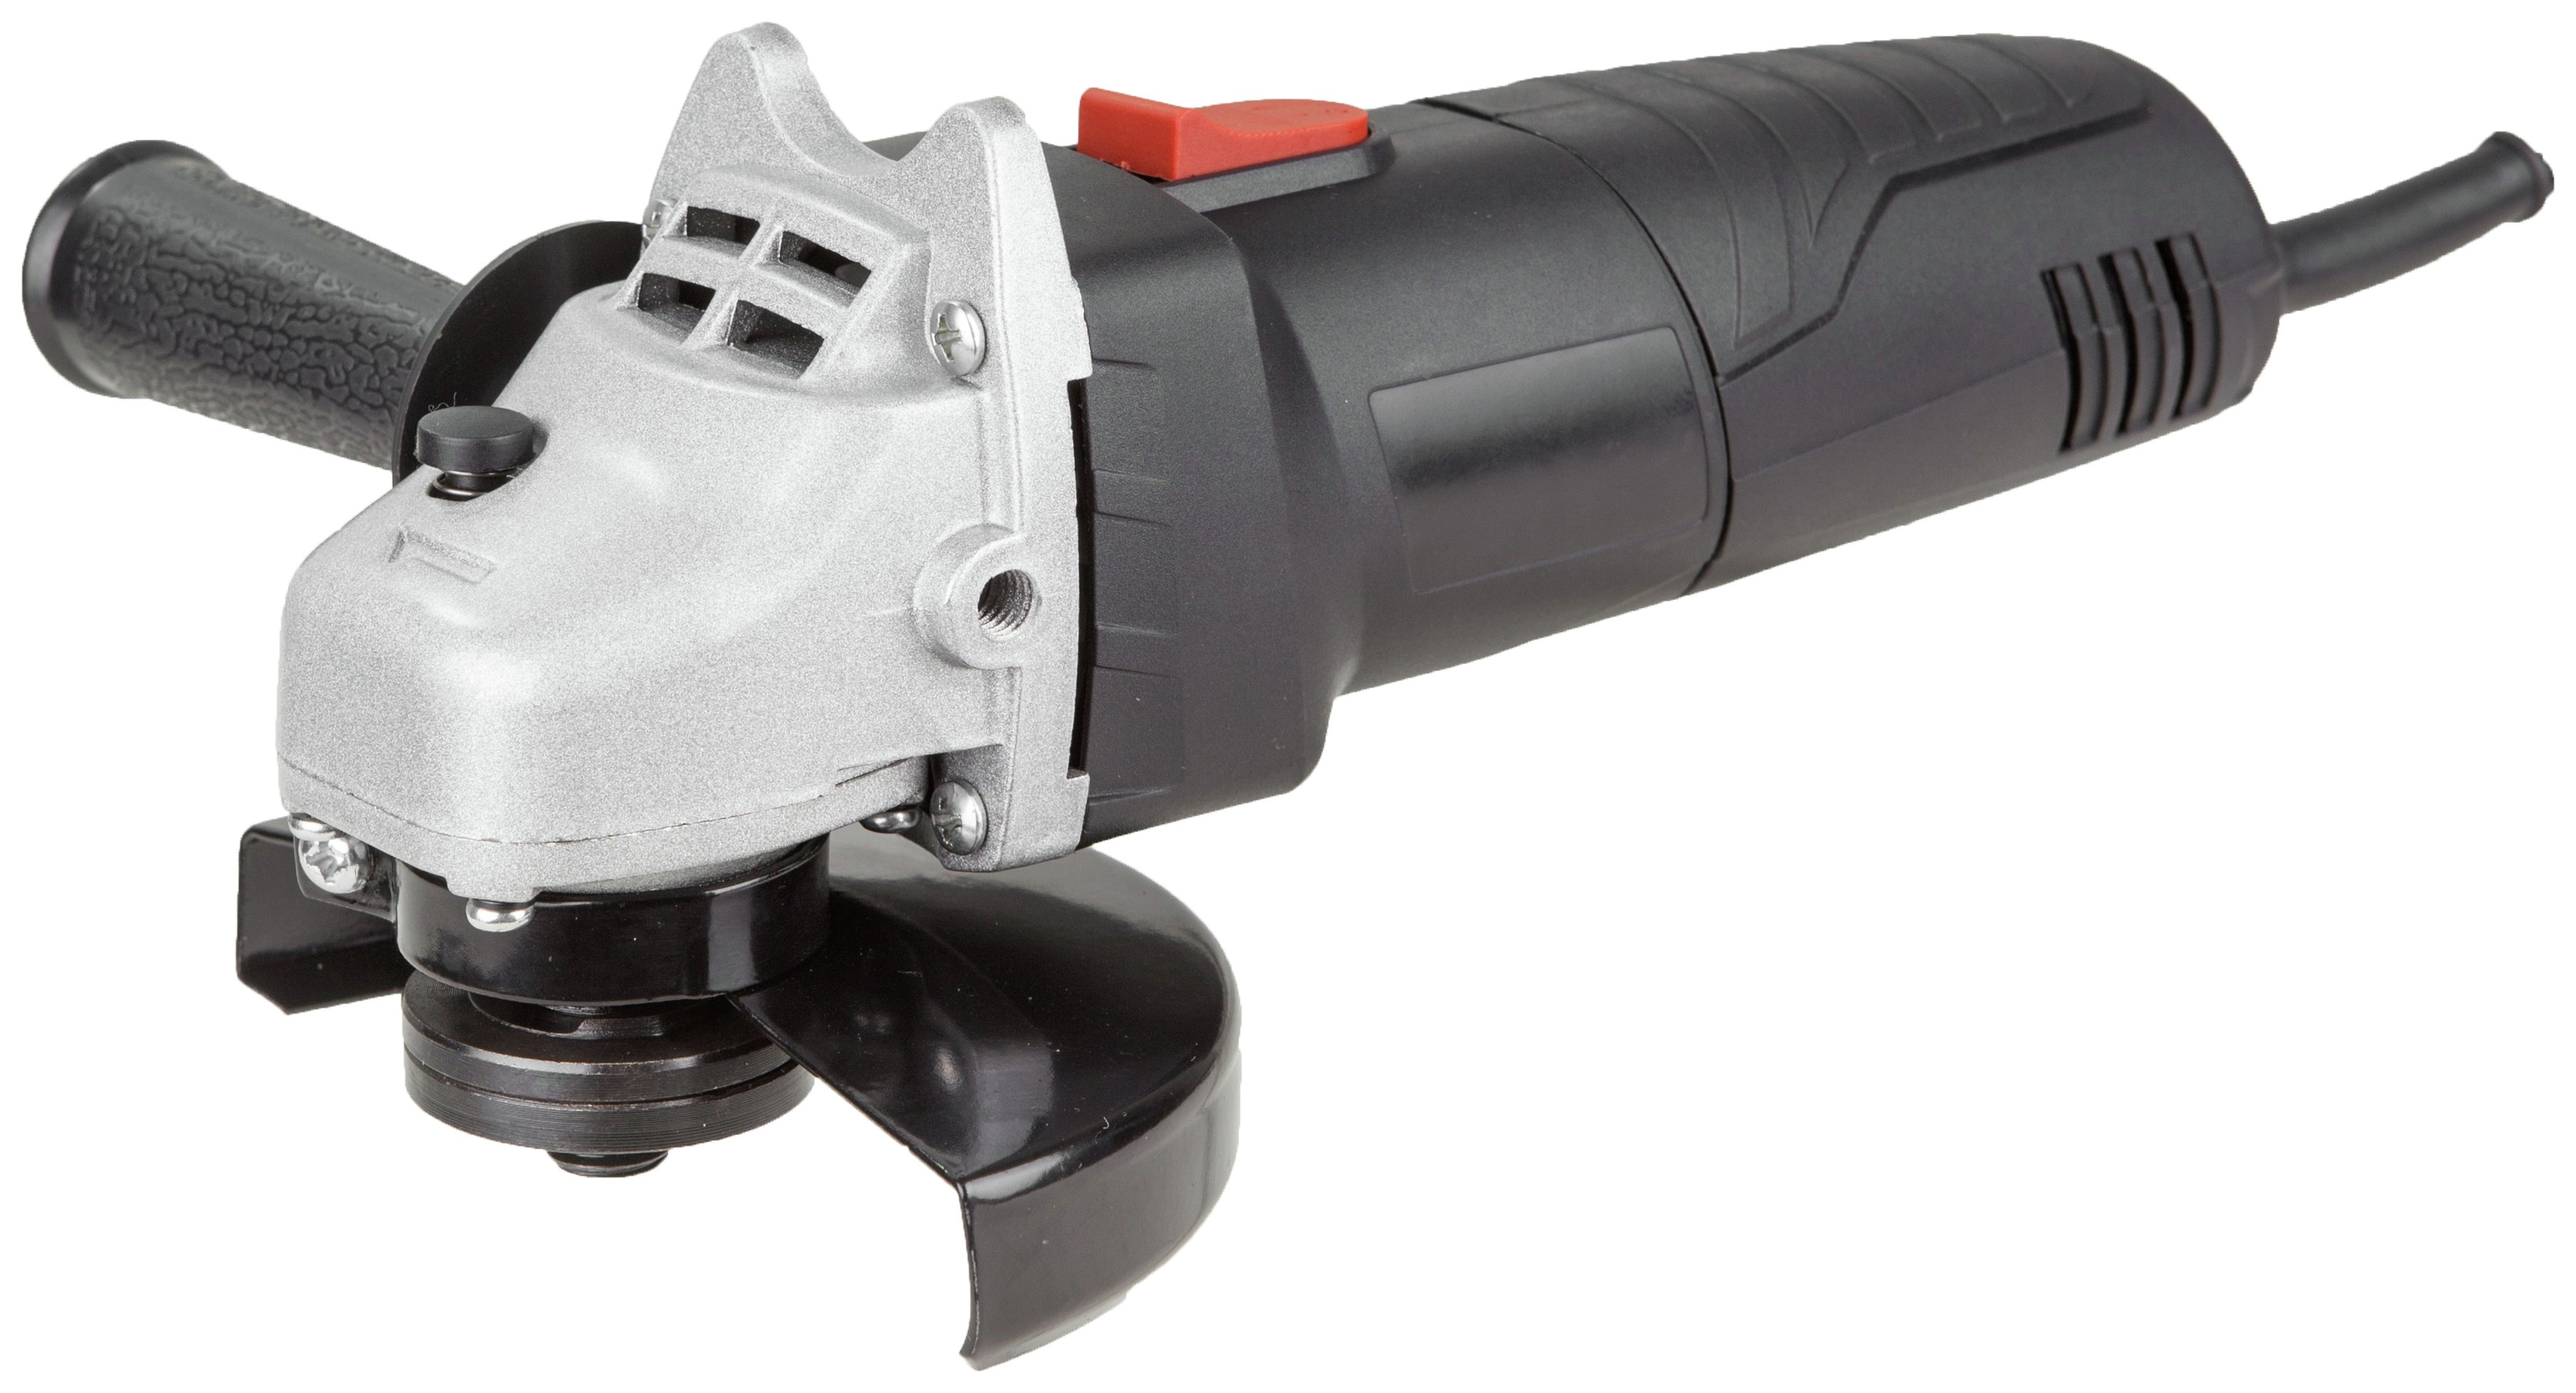 Simple Value 115mm Angle Grinder - 500W